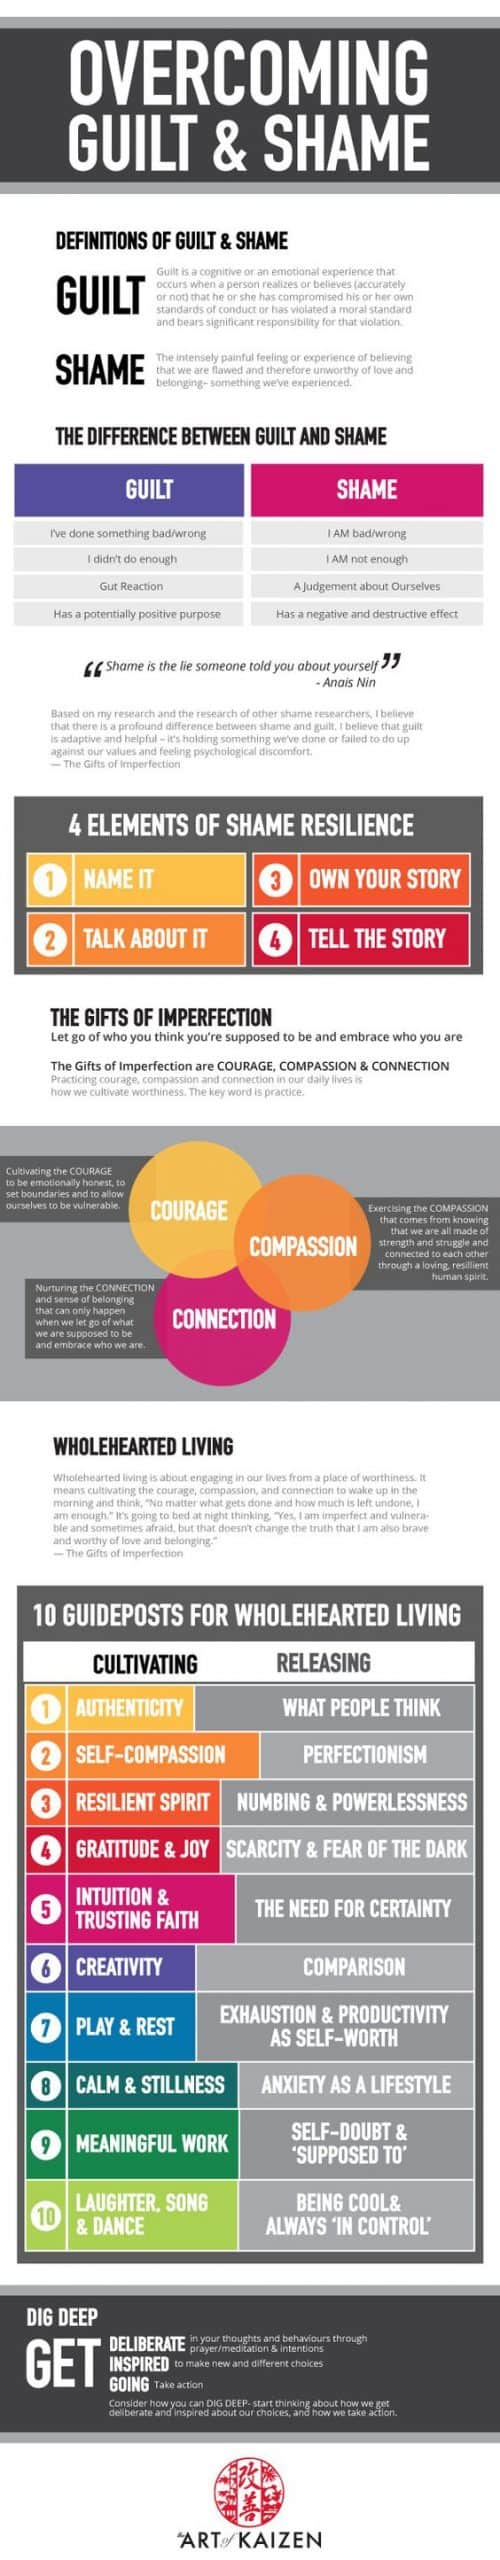 overcoming guilt and shame infographic